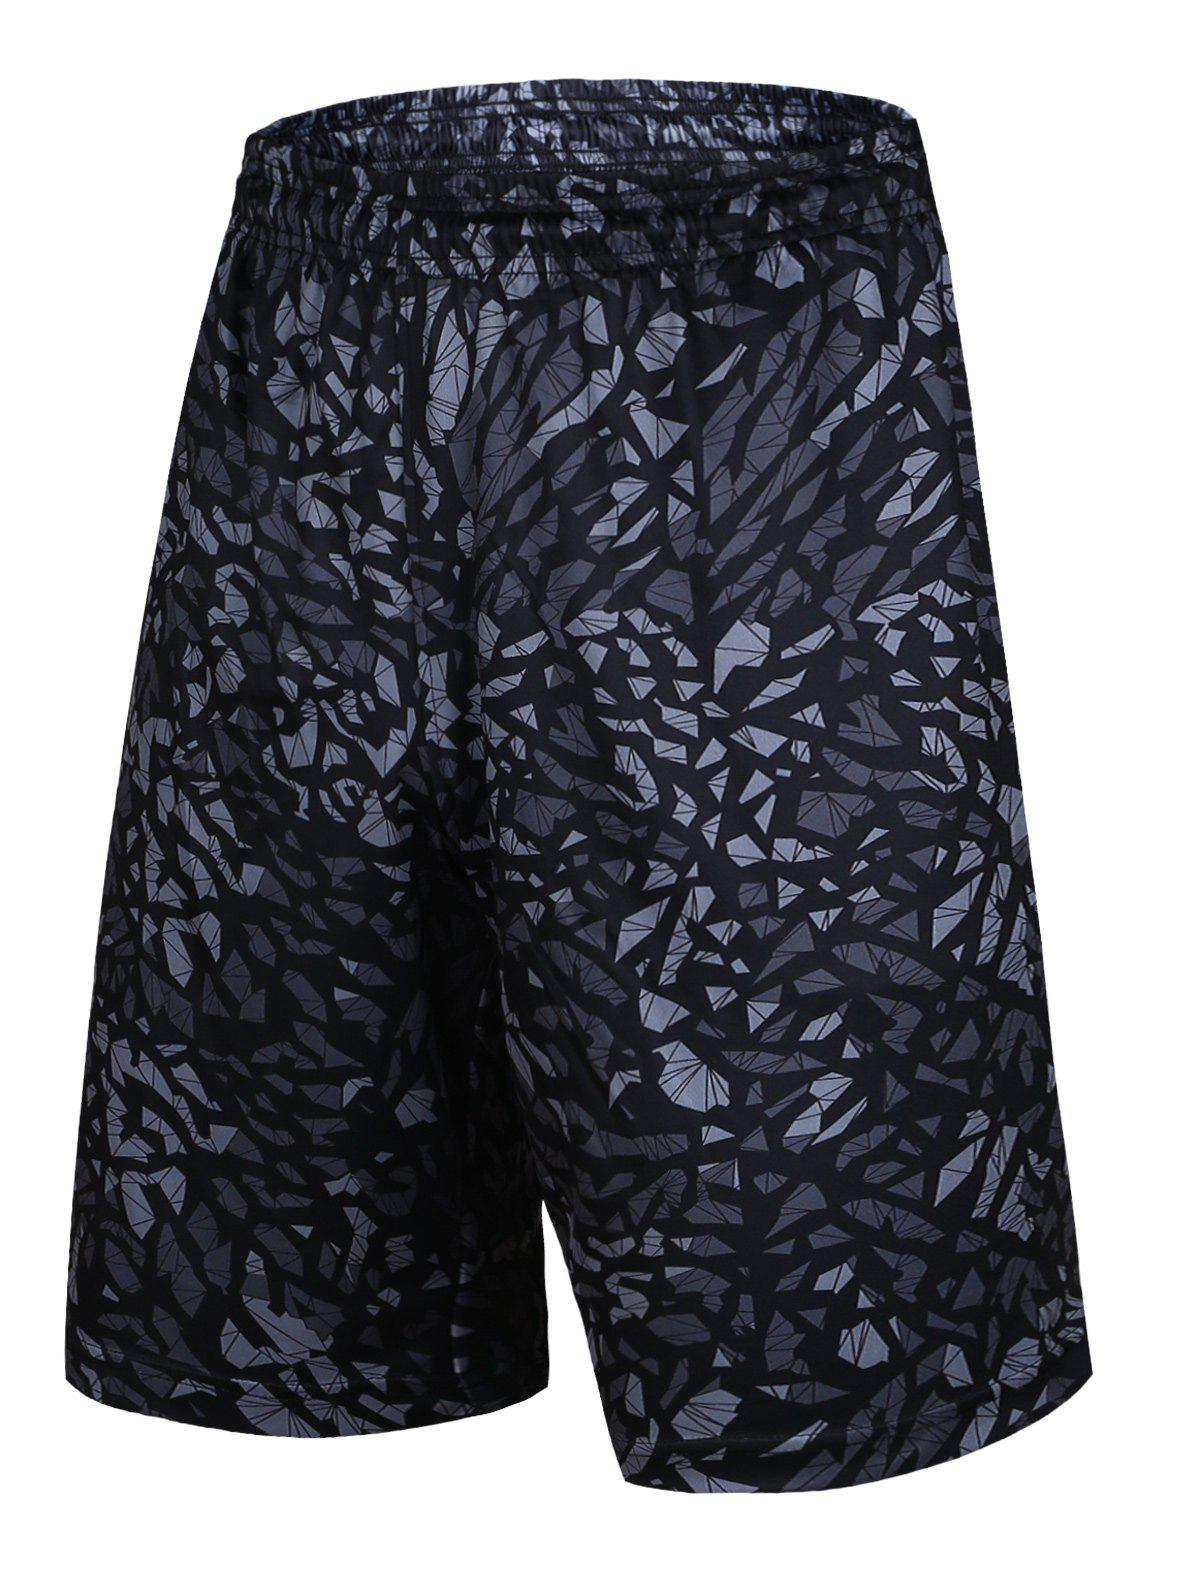 Crushed Ice Geometric Pattern Elastic Waist Basketball Shorts - BLACK S